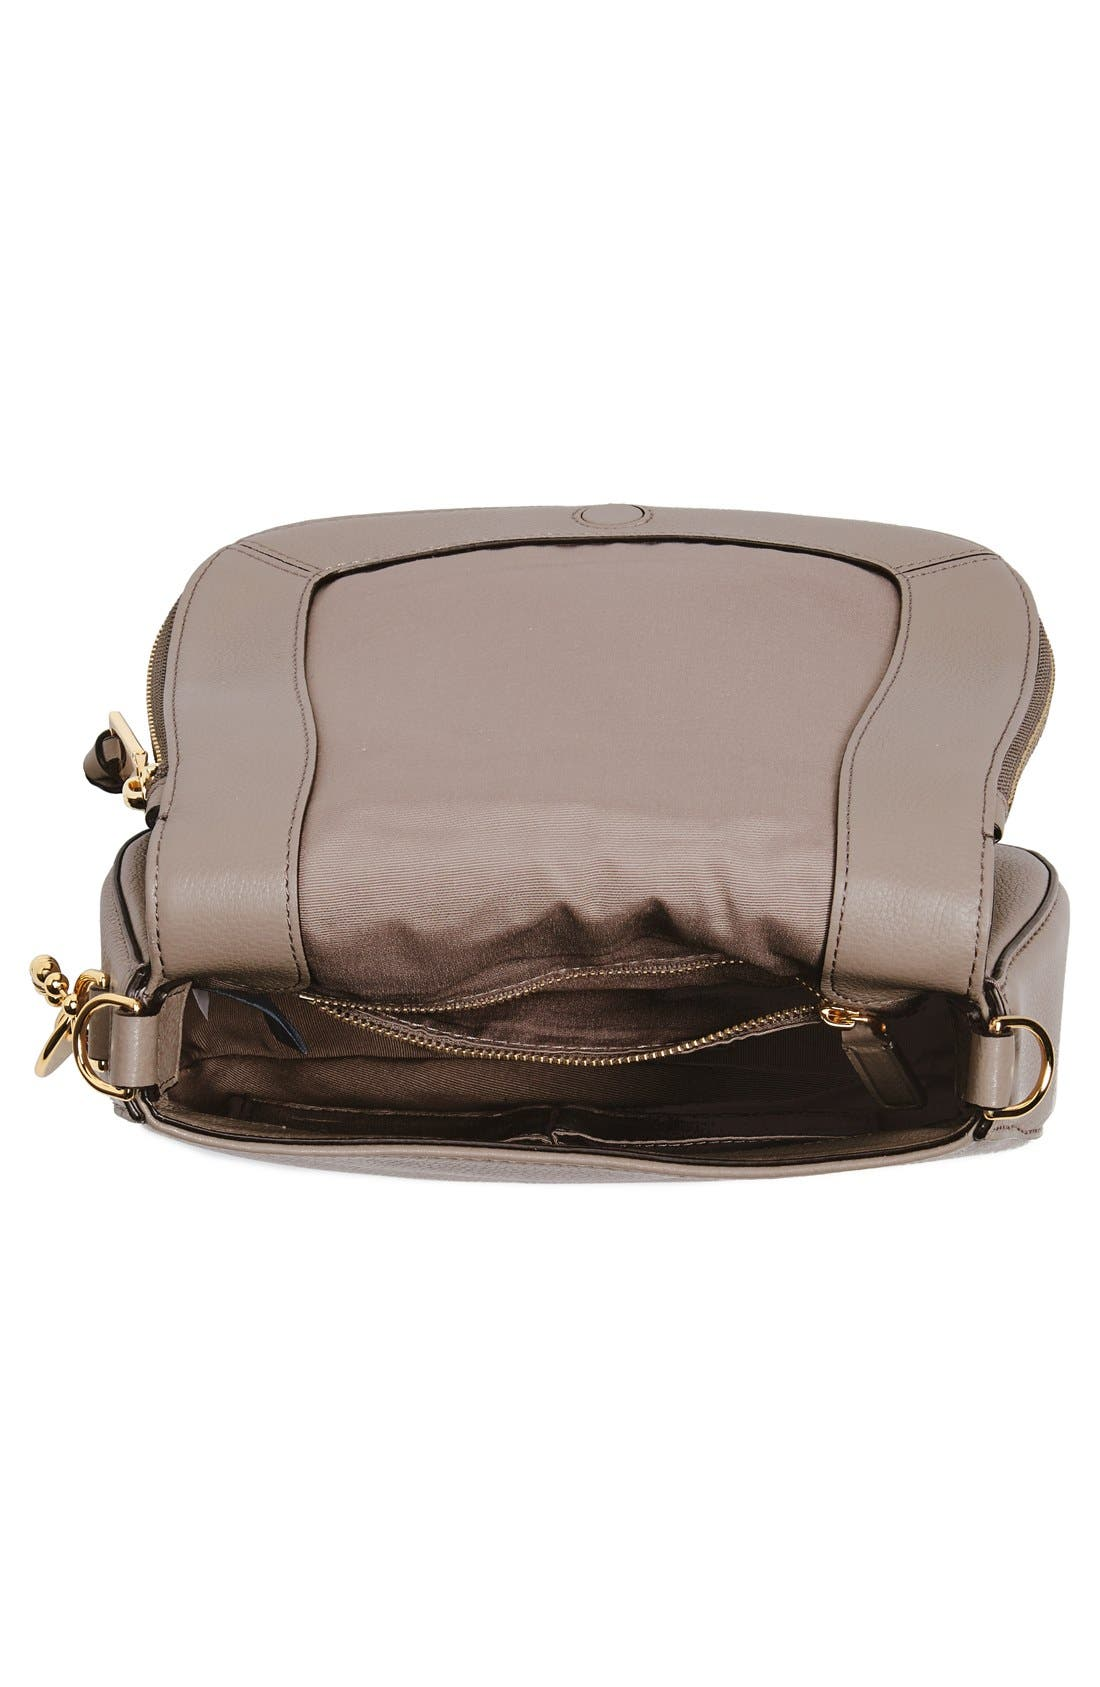 Small Recruit Nomad Pebbled Leather Crossbody Bag,                             Alternate thumbnail 48, color,